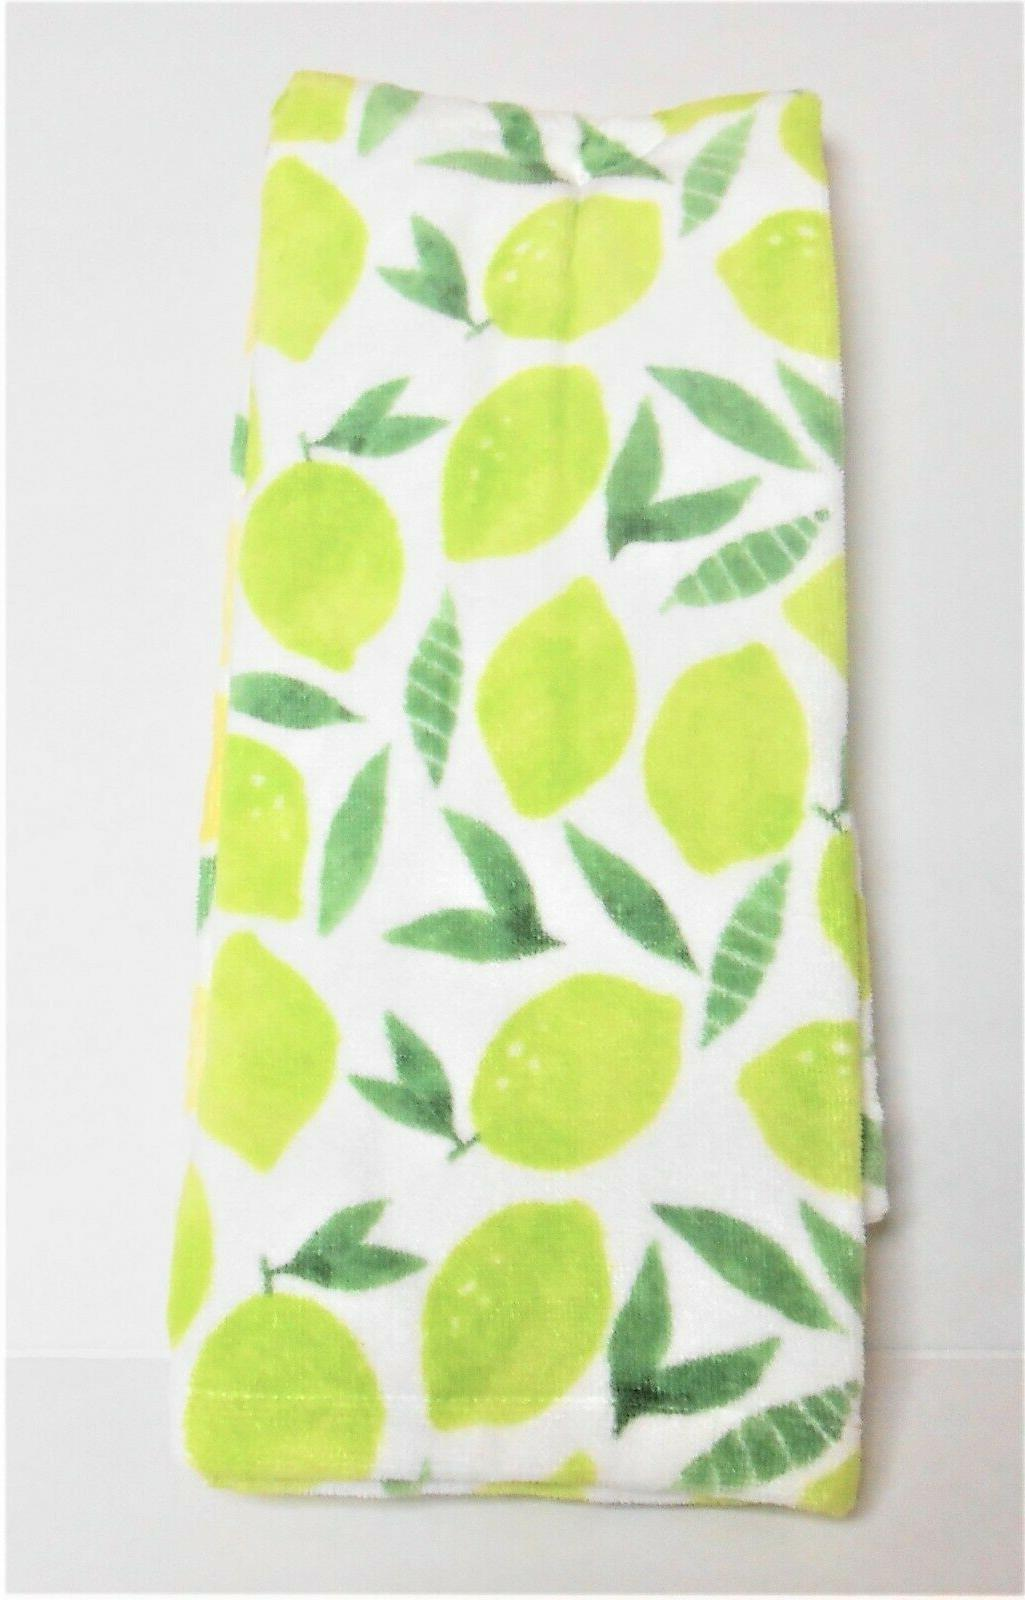 Envogue of Kitchen Tea Towels and Limes